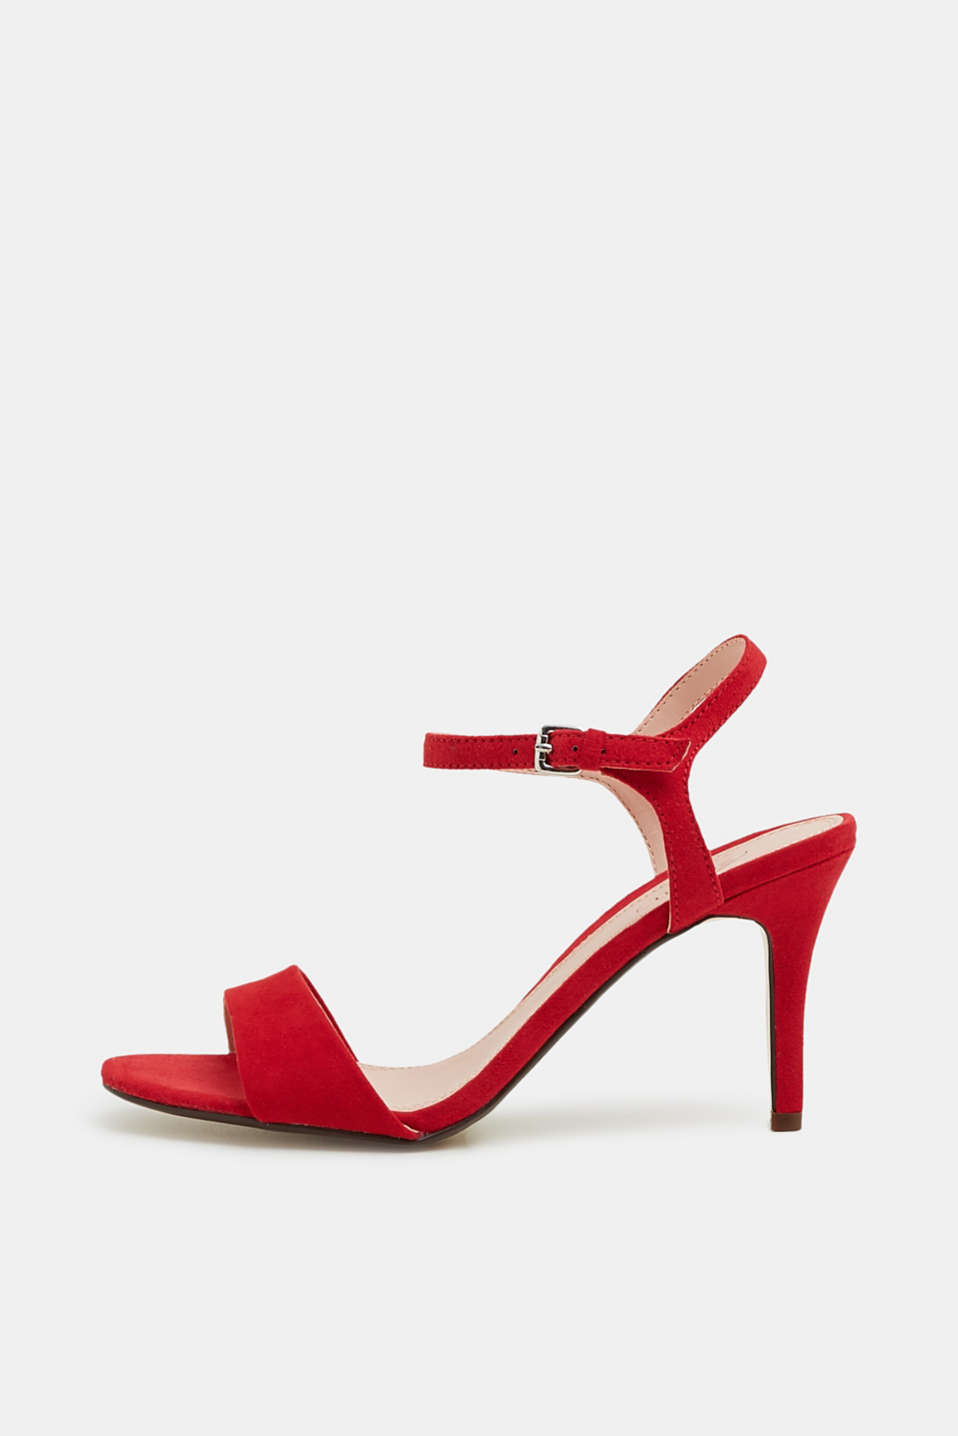 Esprit - Sandalette in Velours-Optik